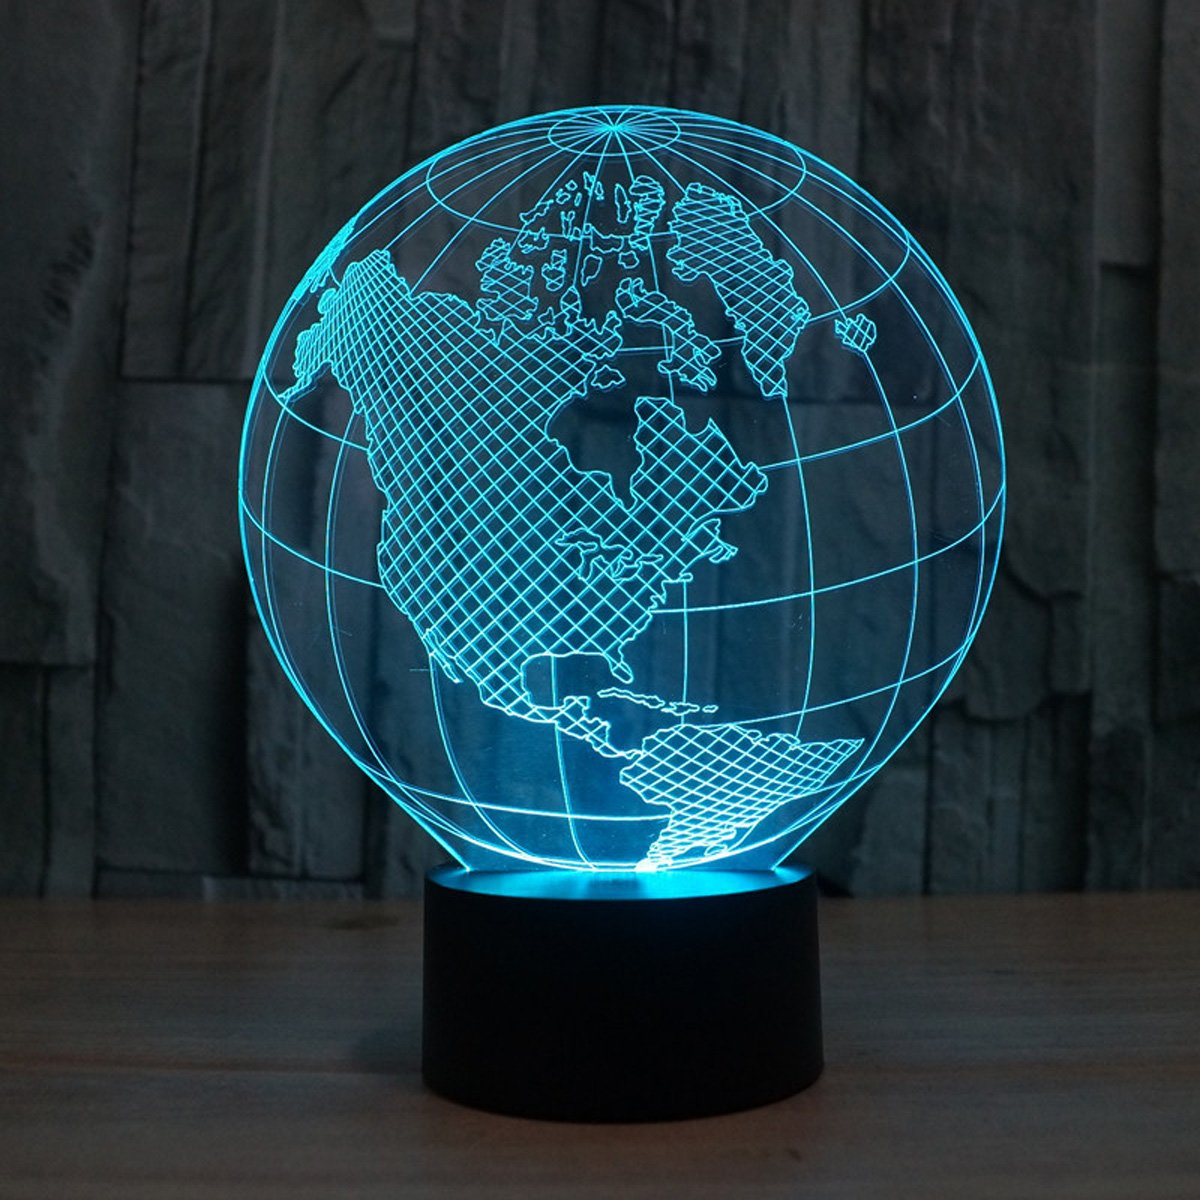 WONFAST® 3D World American Globe Optical Illusion Lighting 7 Colors Change Touch Switch LED Table Lamp Children's Night Light for Home Decoration Household Bedroom by WONFAST (Image #2)